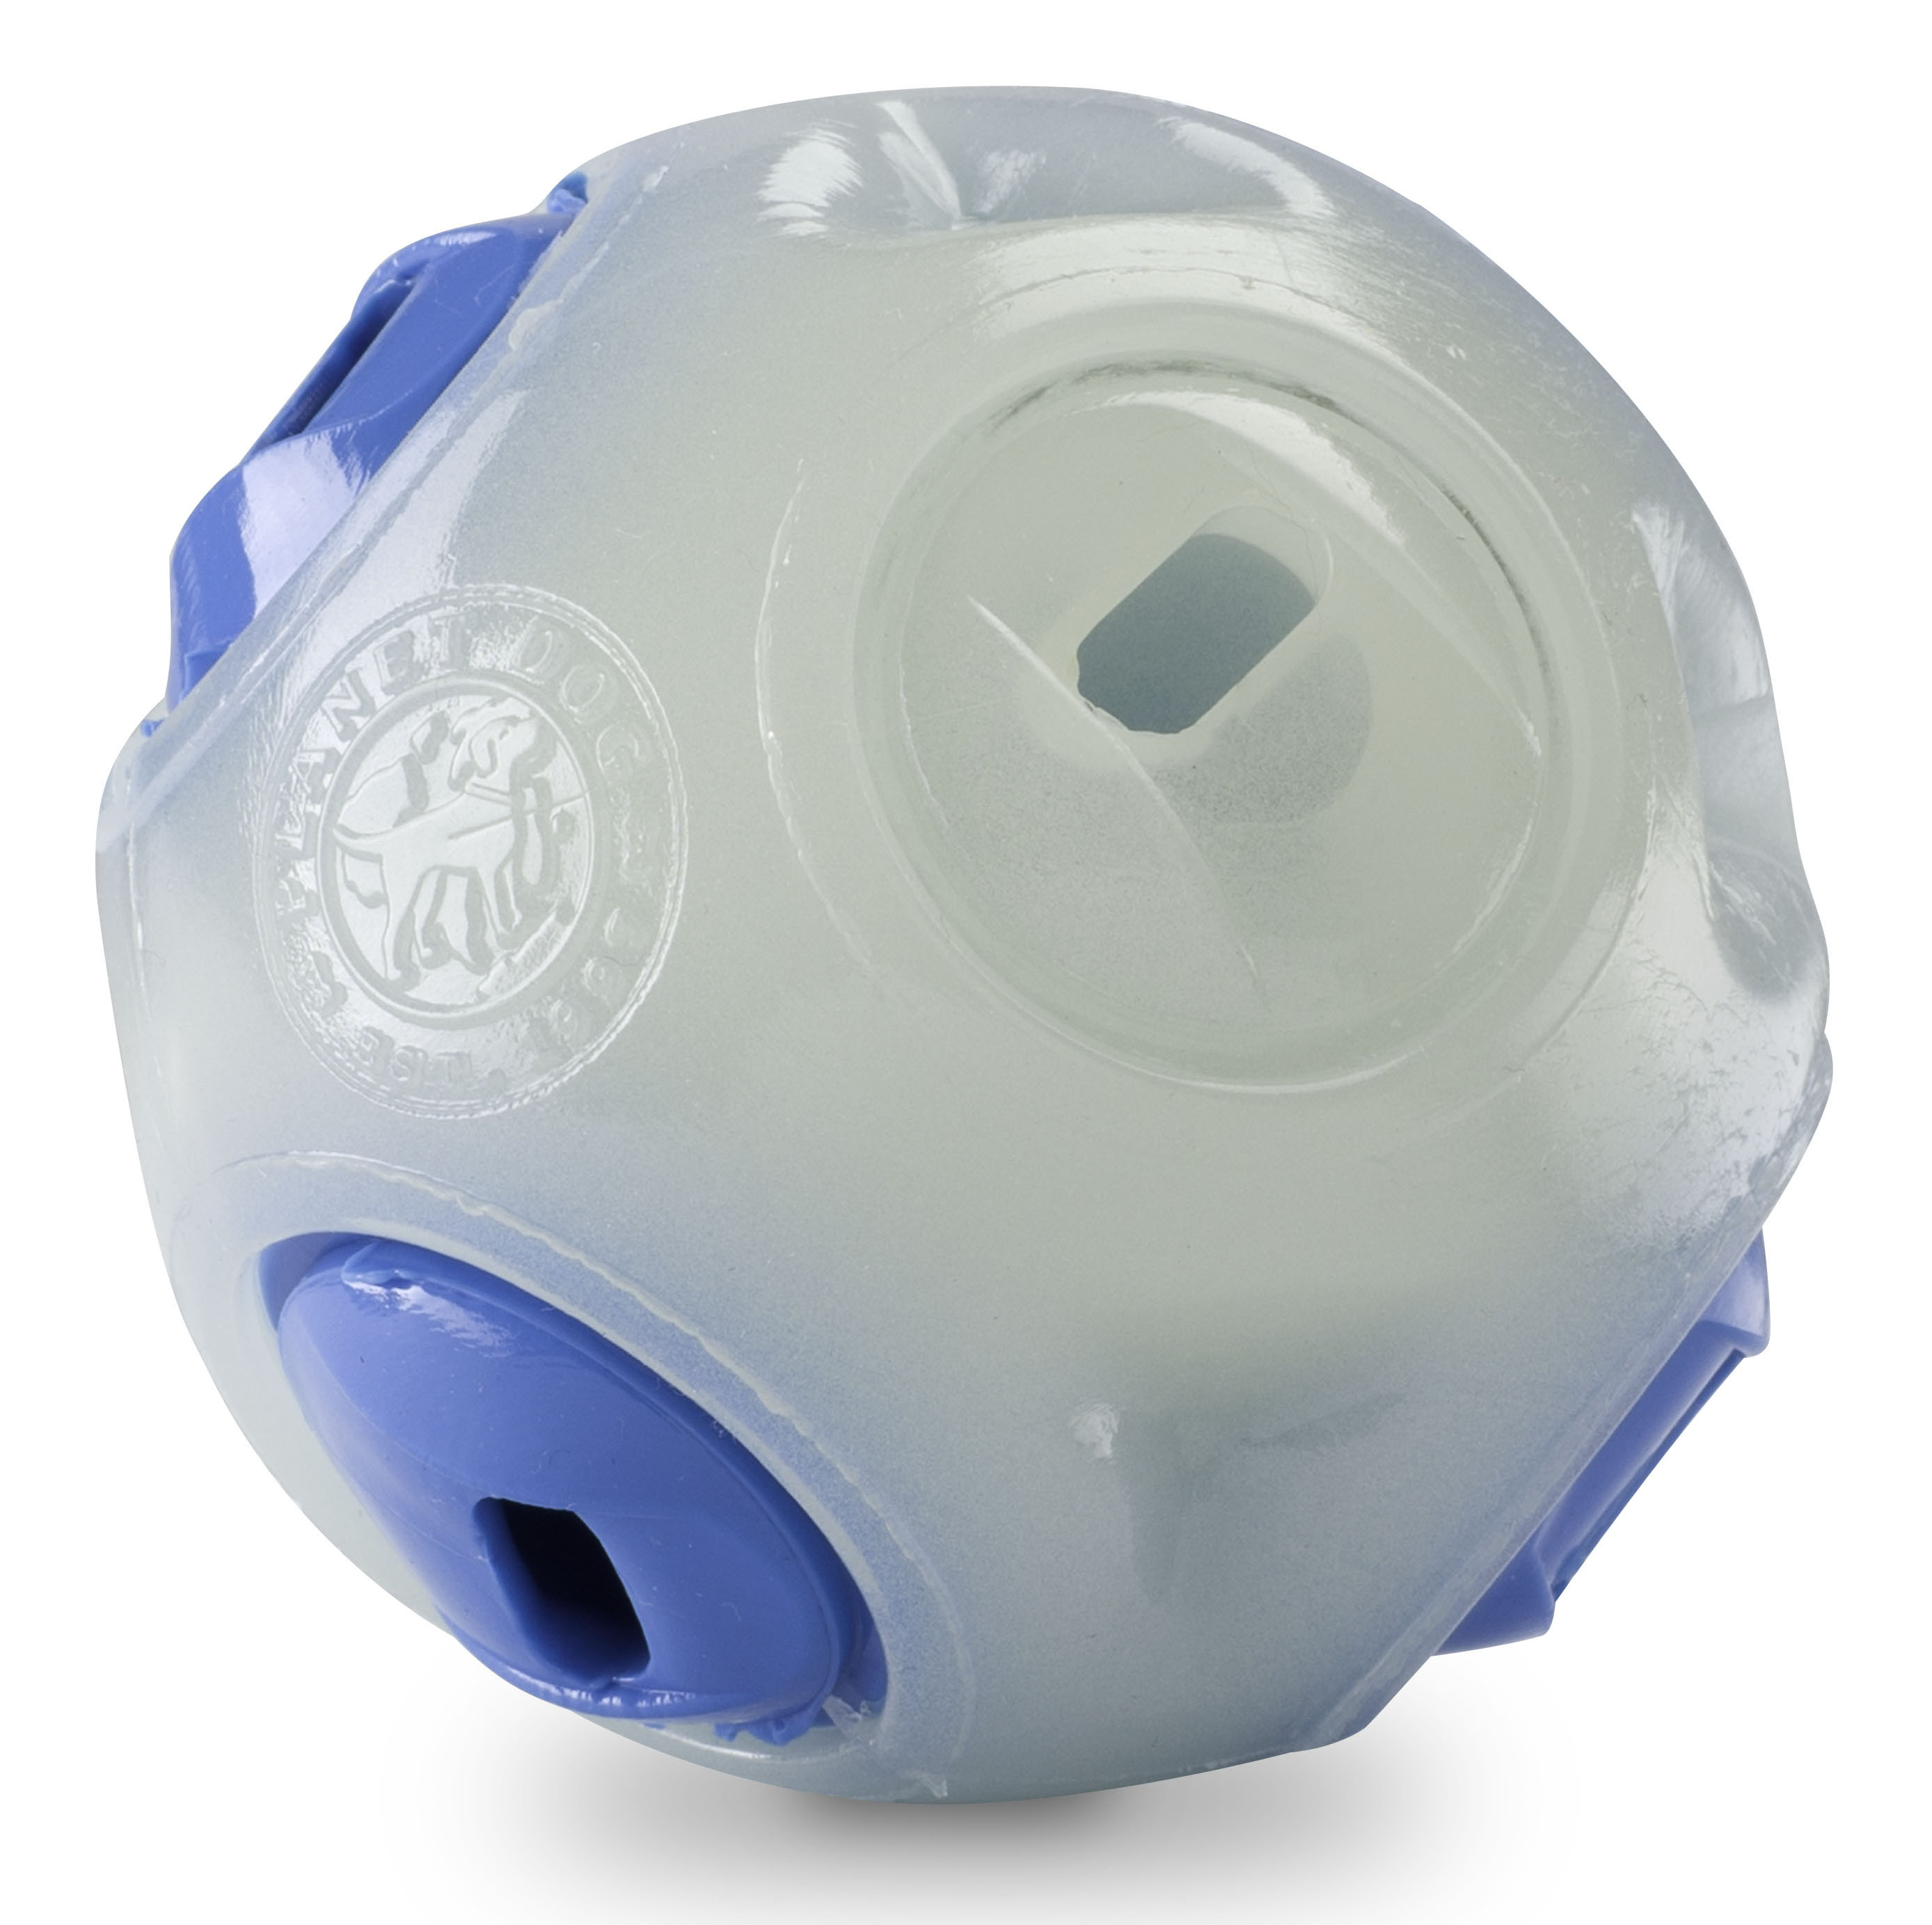 Planet Dog Orbee-Tuff Glow in the Dark Whistle Ball bei WILD HAZEL